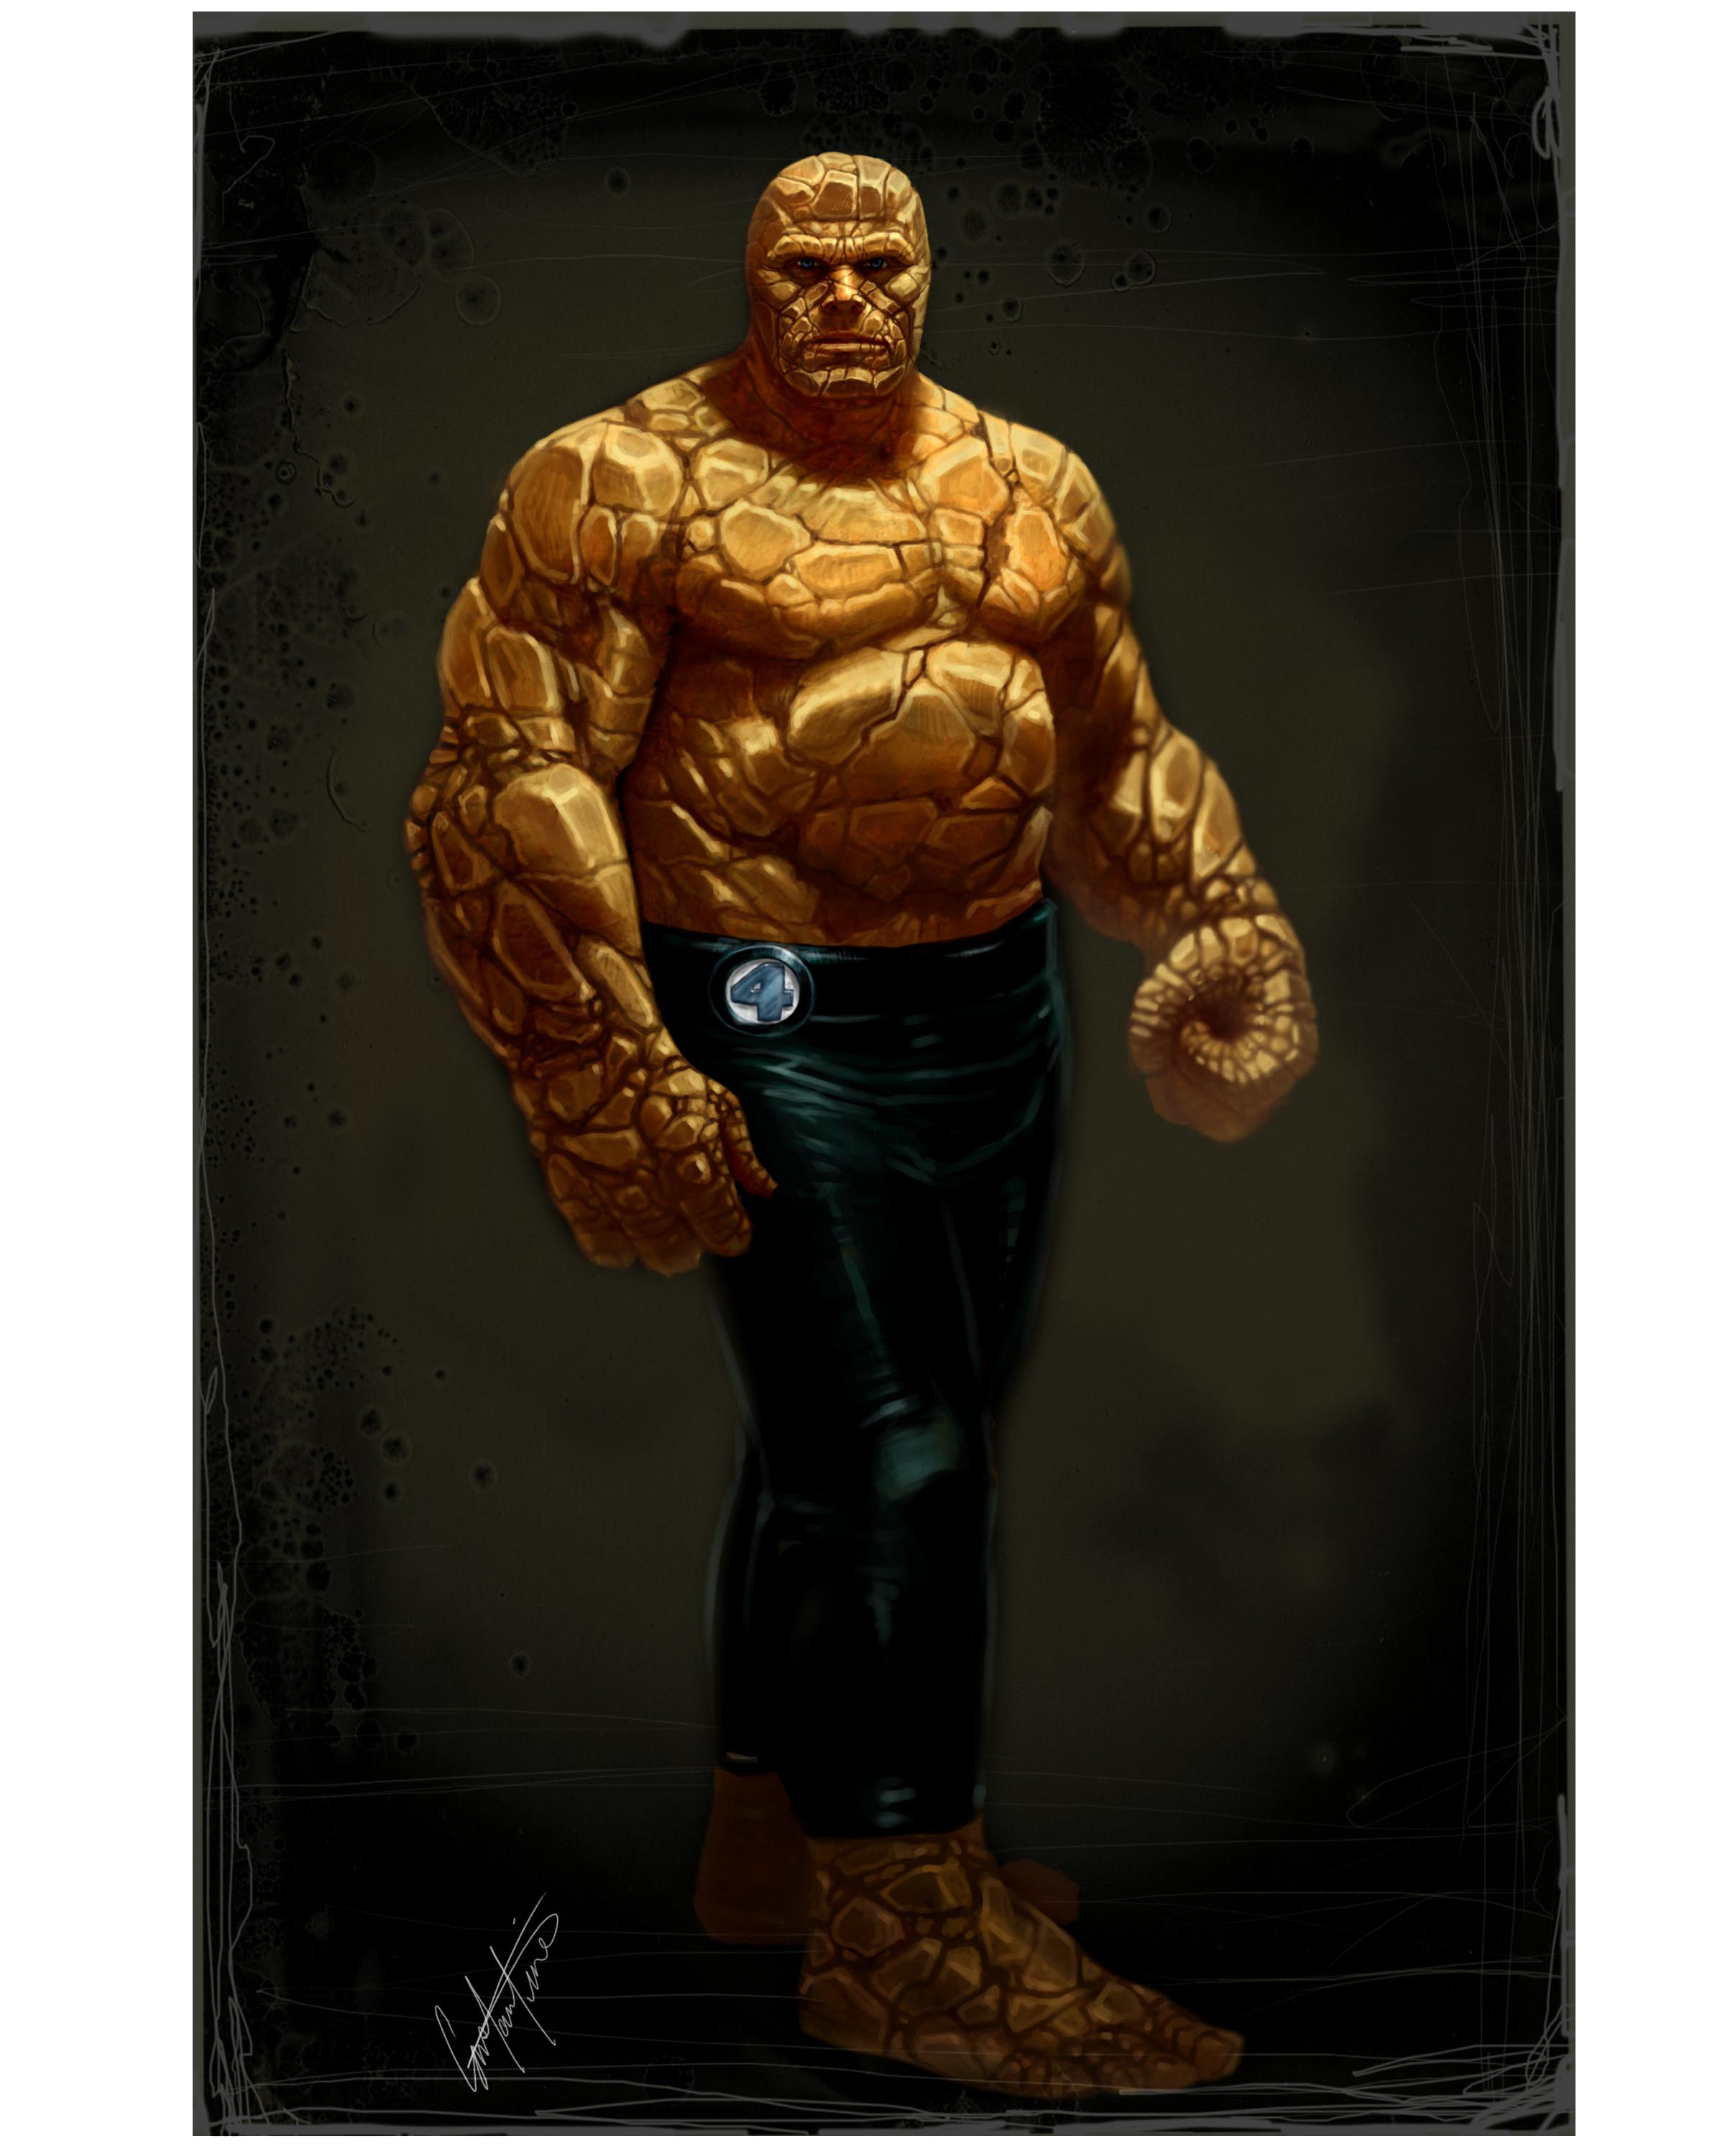 FANTASTIC 4 'THE THING' DESIGN